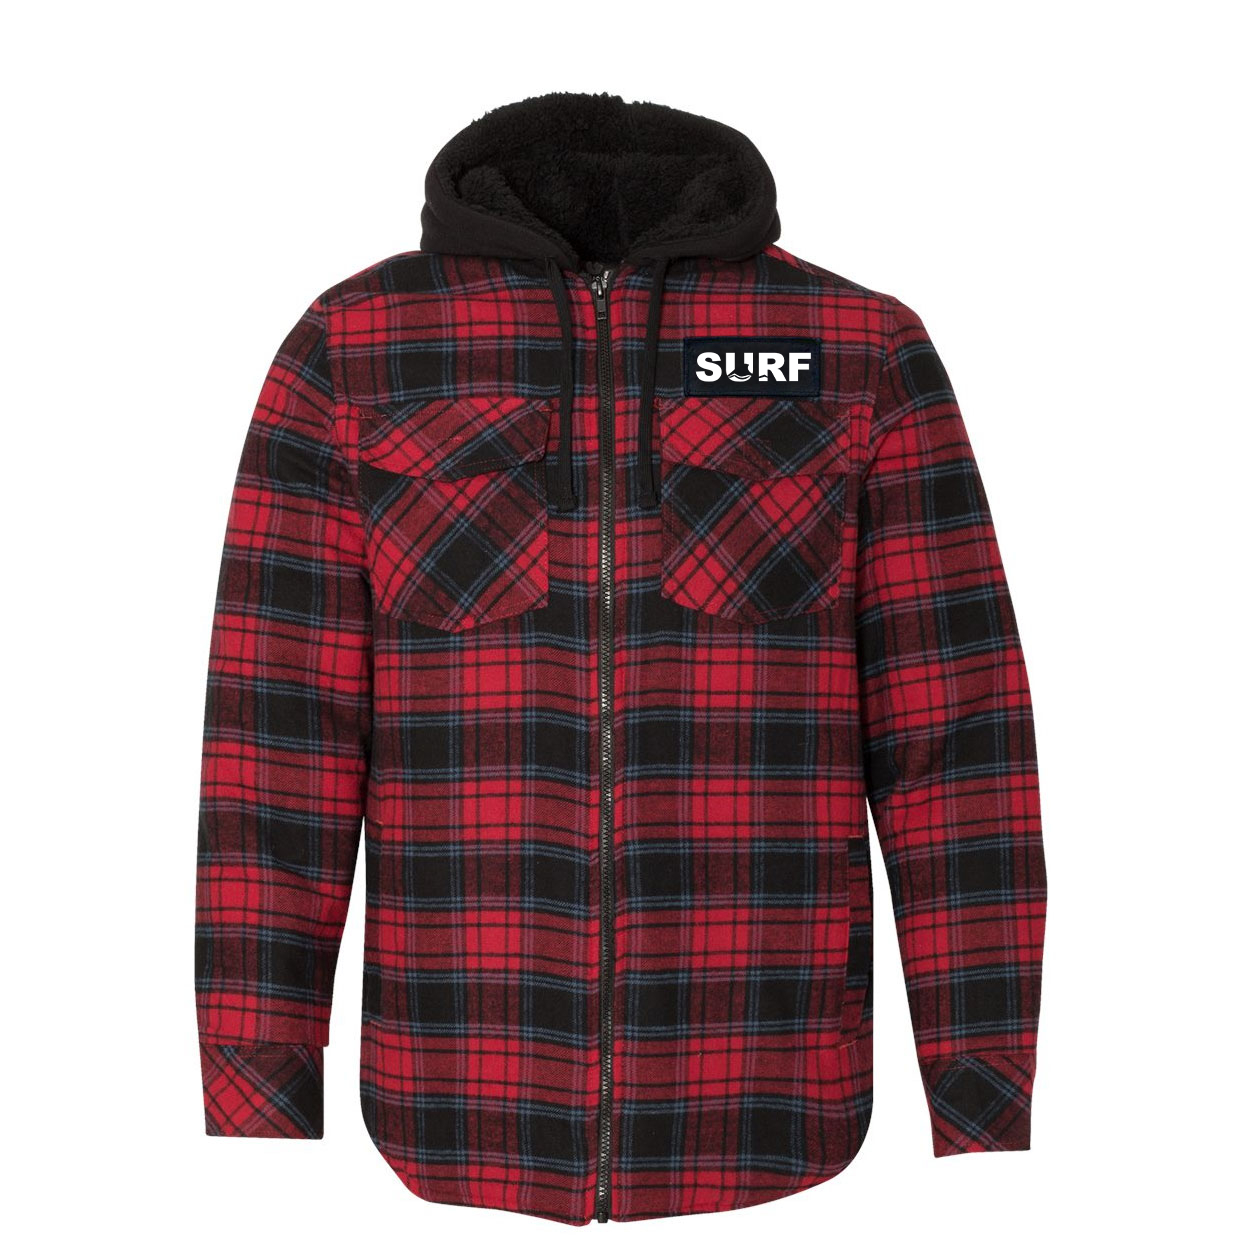 Surf Wave Logo Classic Unisex Full Zip Woven Patch Hooded Flannel Jacket Red/Black Buffalo (White Logo)